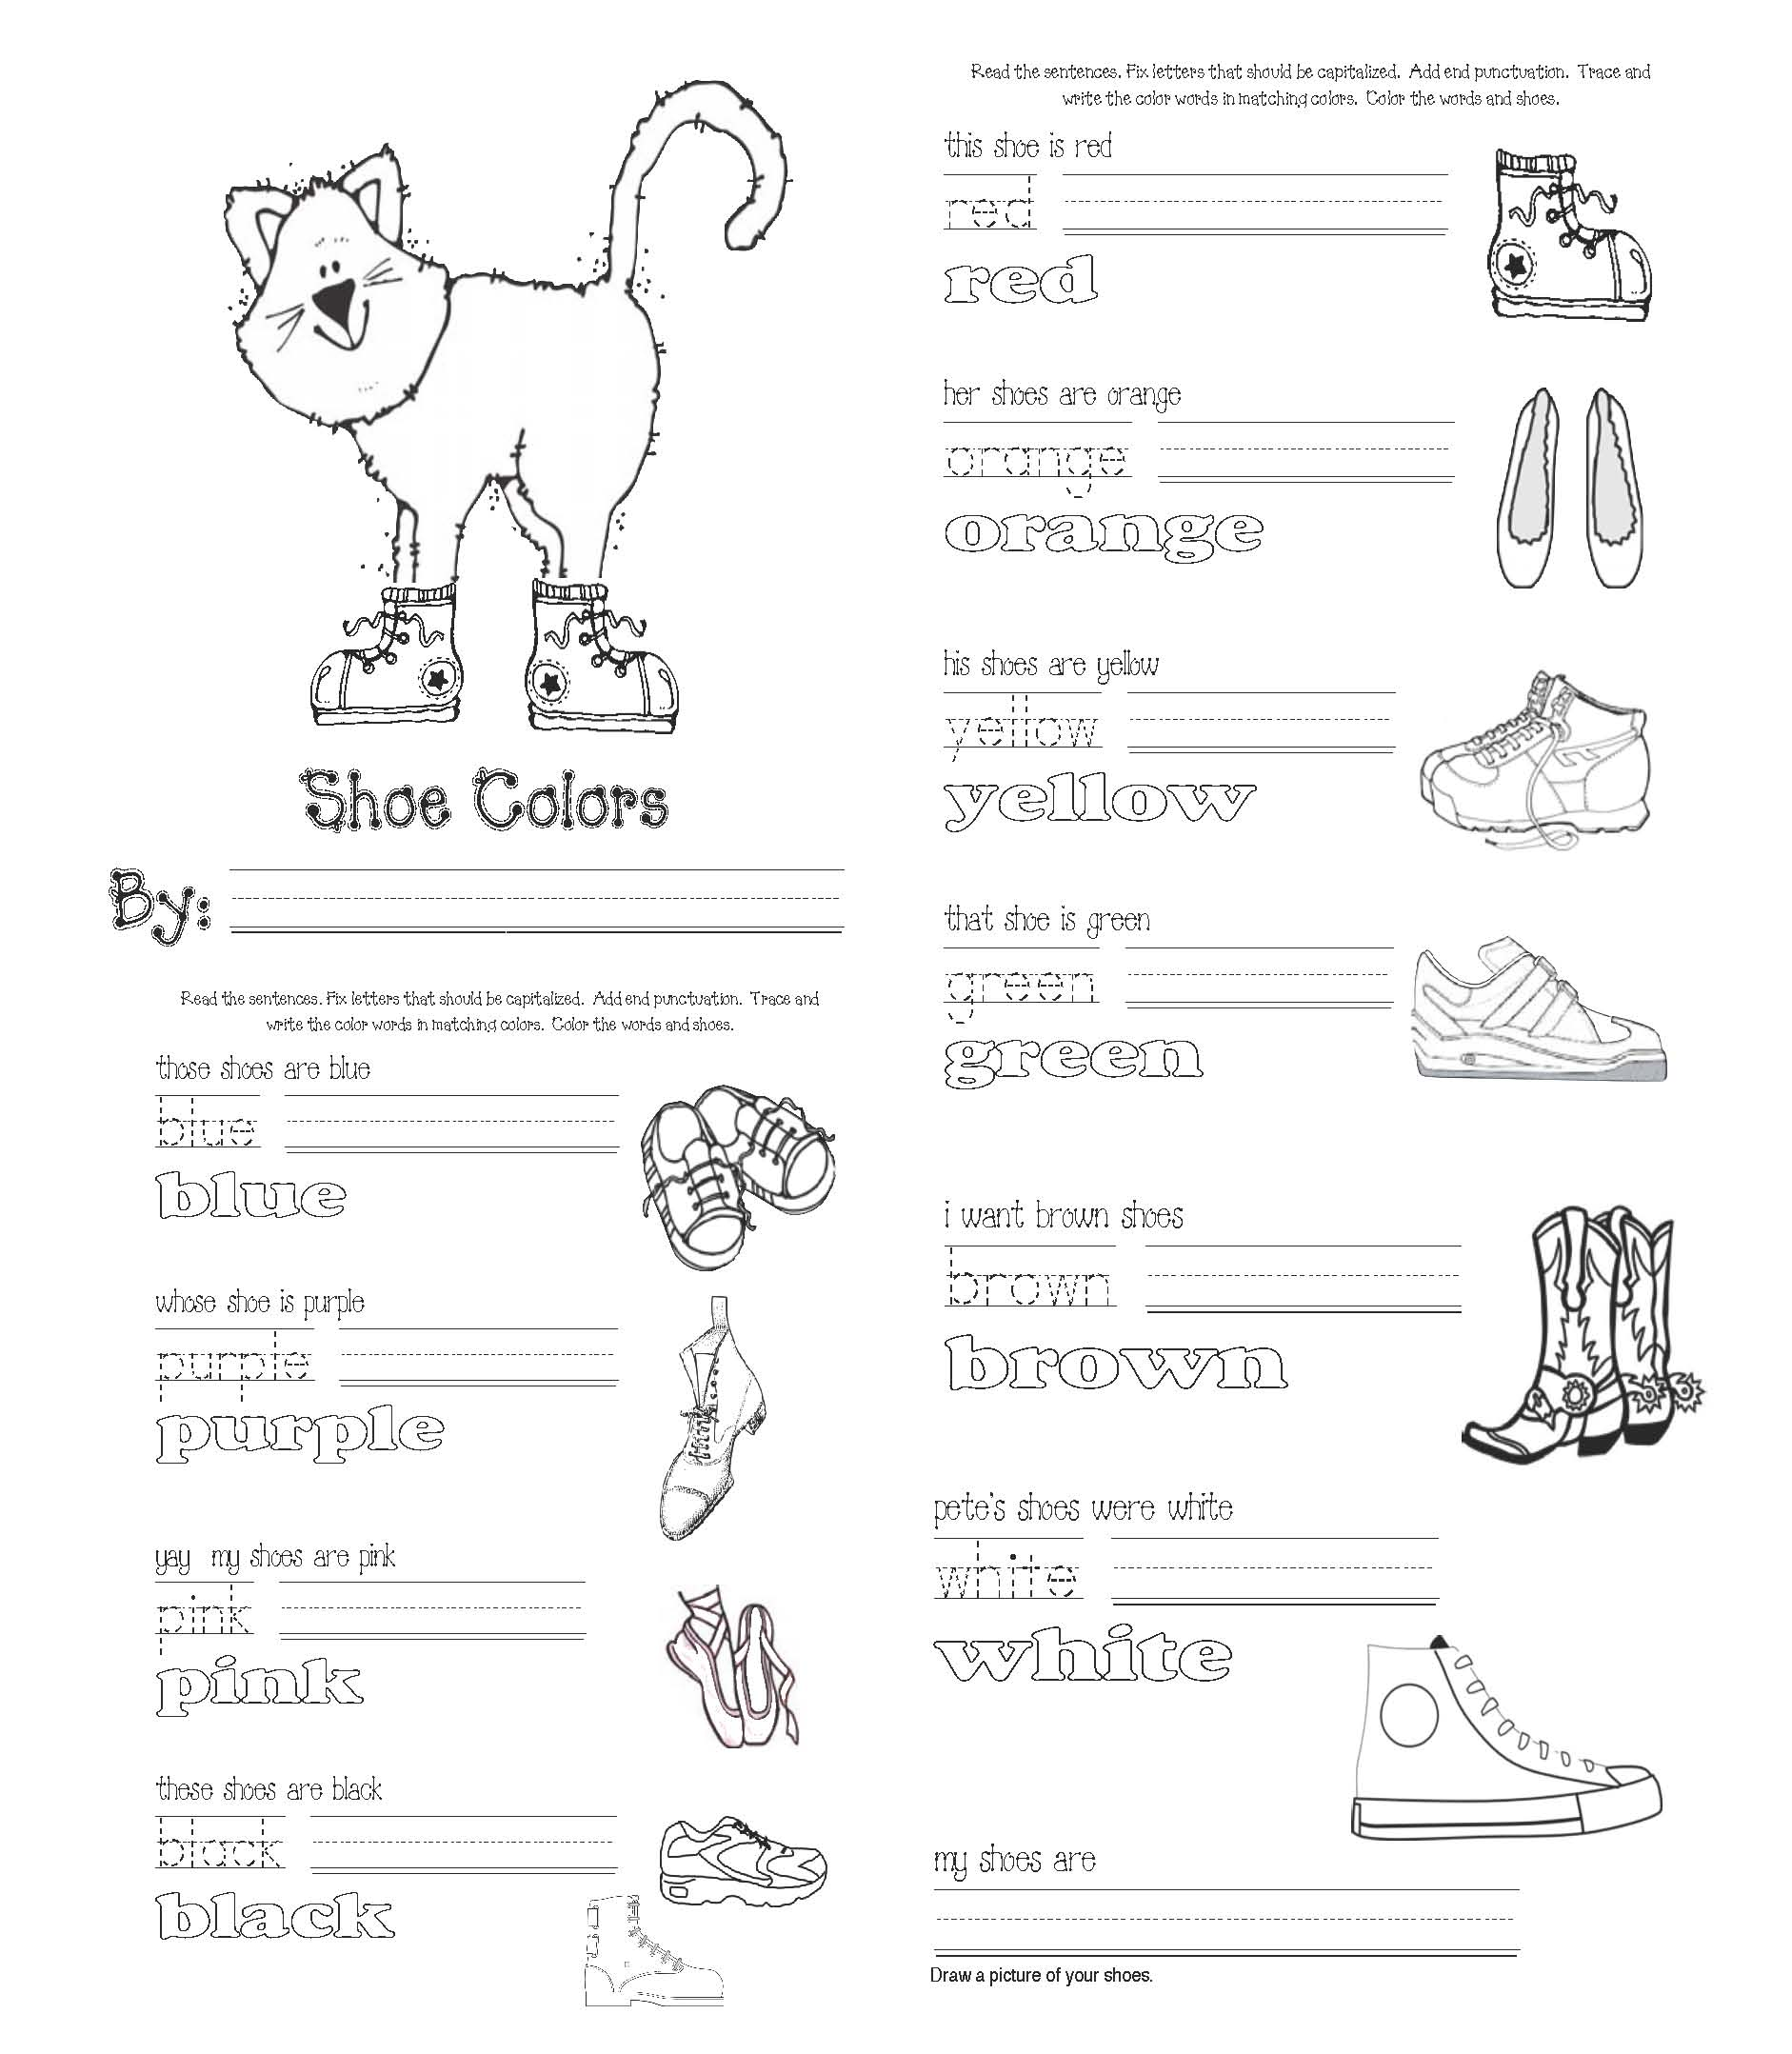 Pete the cat activities, pete the cat I love my white shoes activities, pete the cat crafts, pete the cat games, pete the cat worksheets, pete the cat lessons, color activities, color games, color words, color word cards